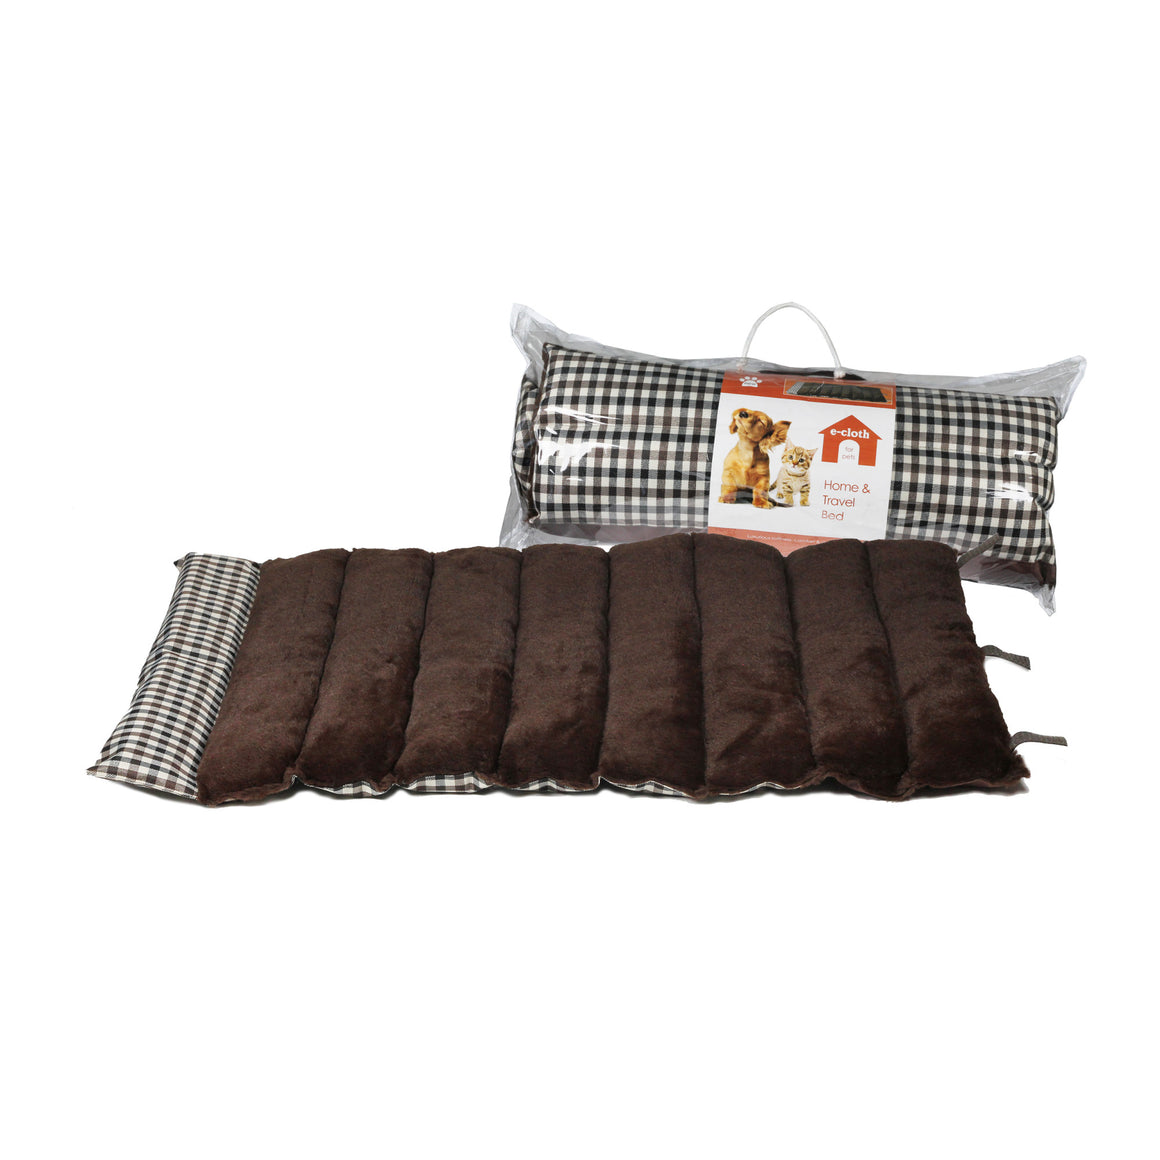 Home & Travel Bed